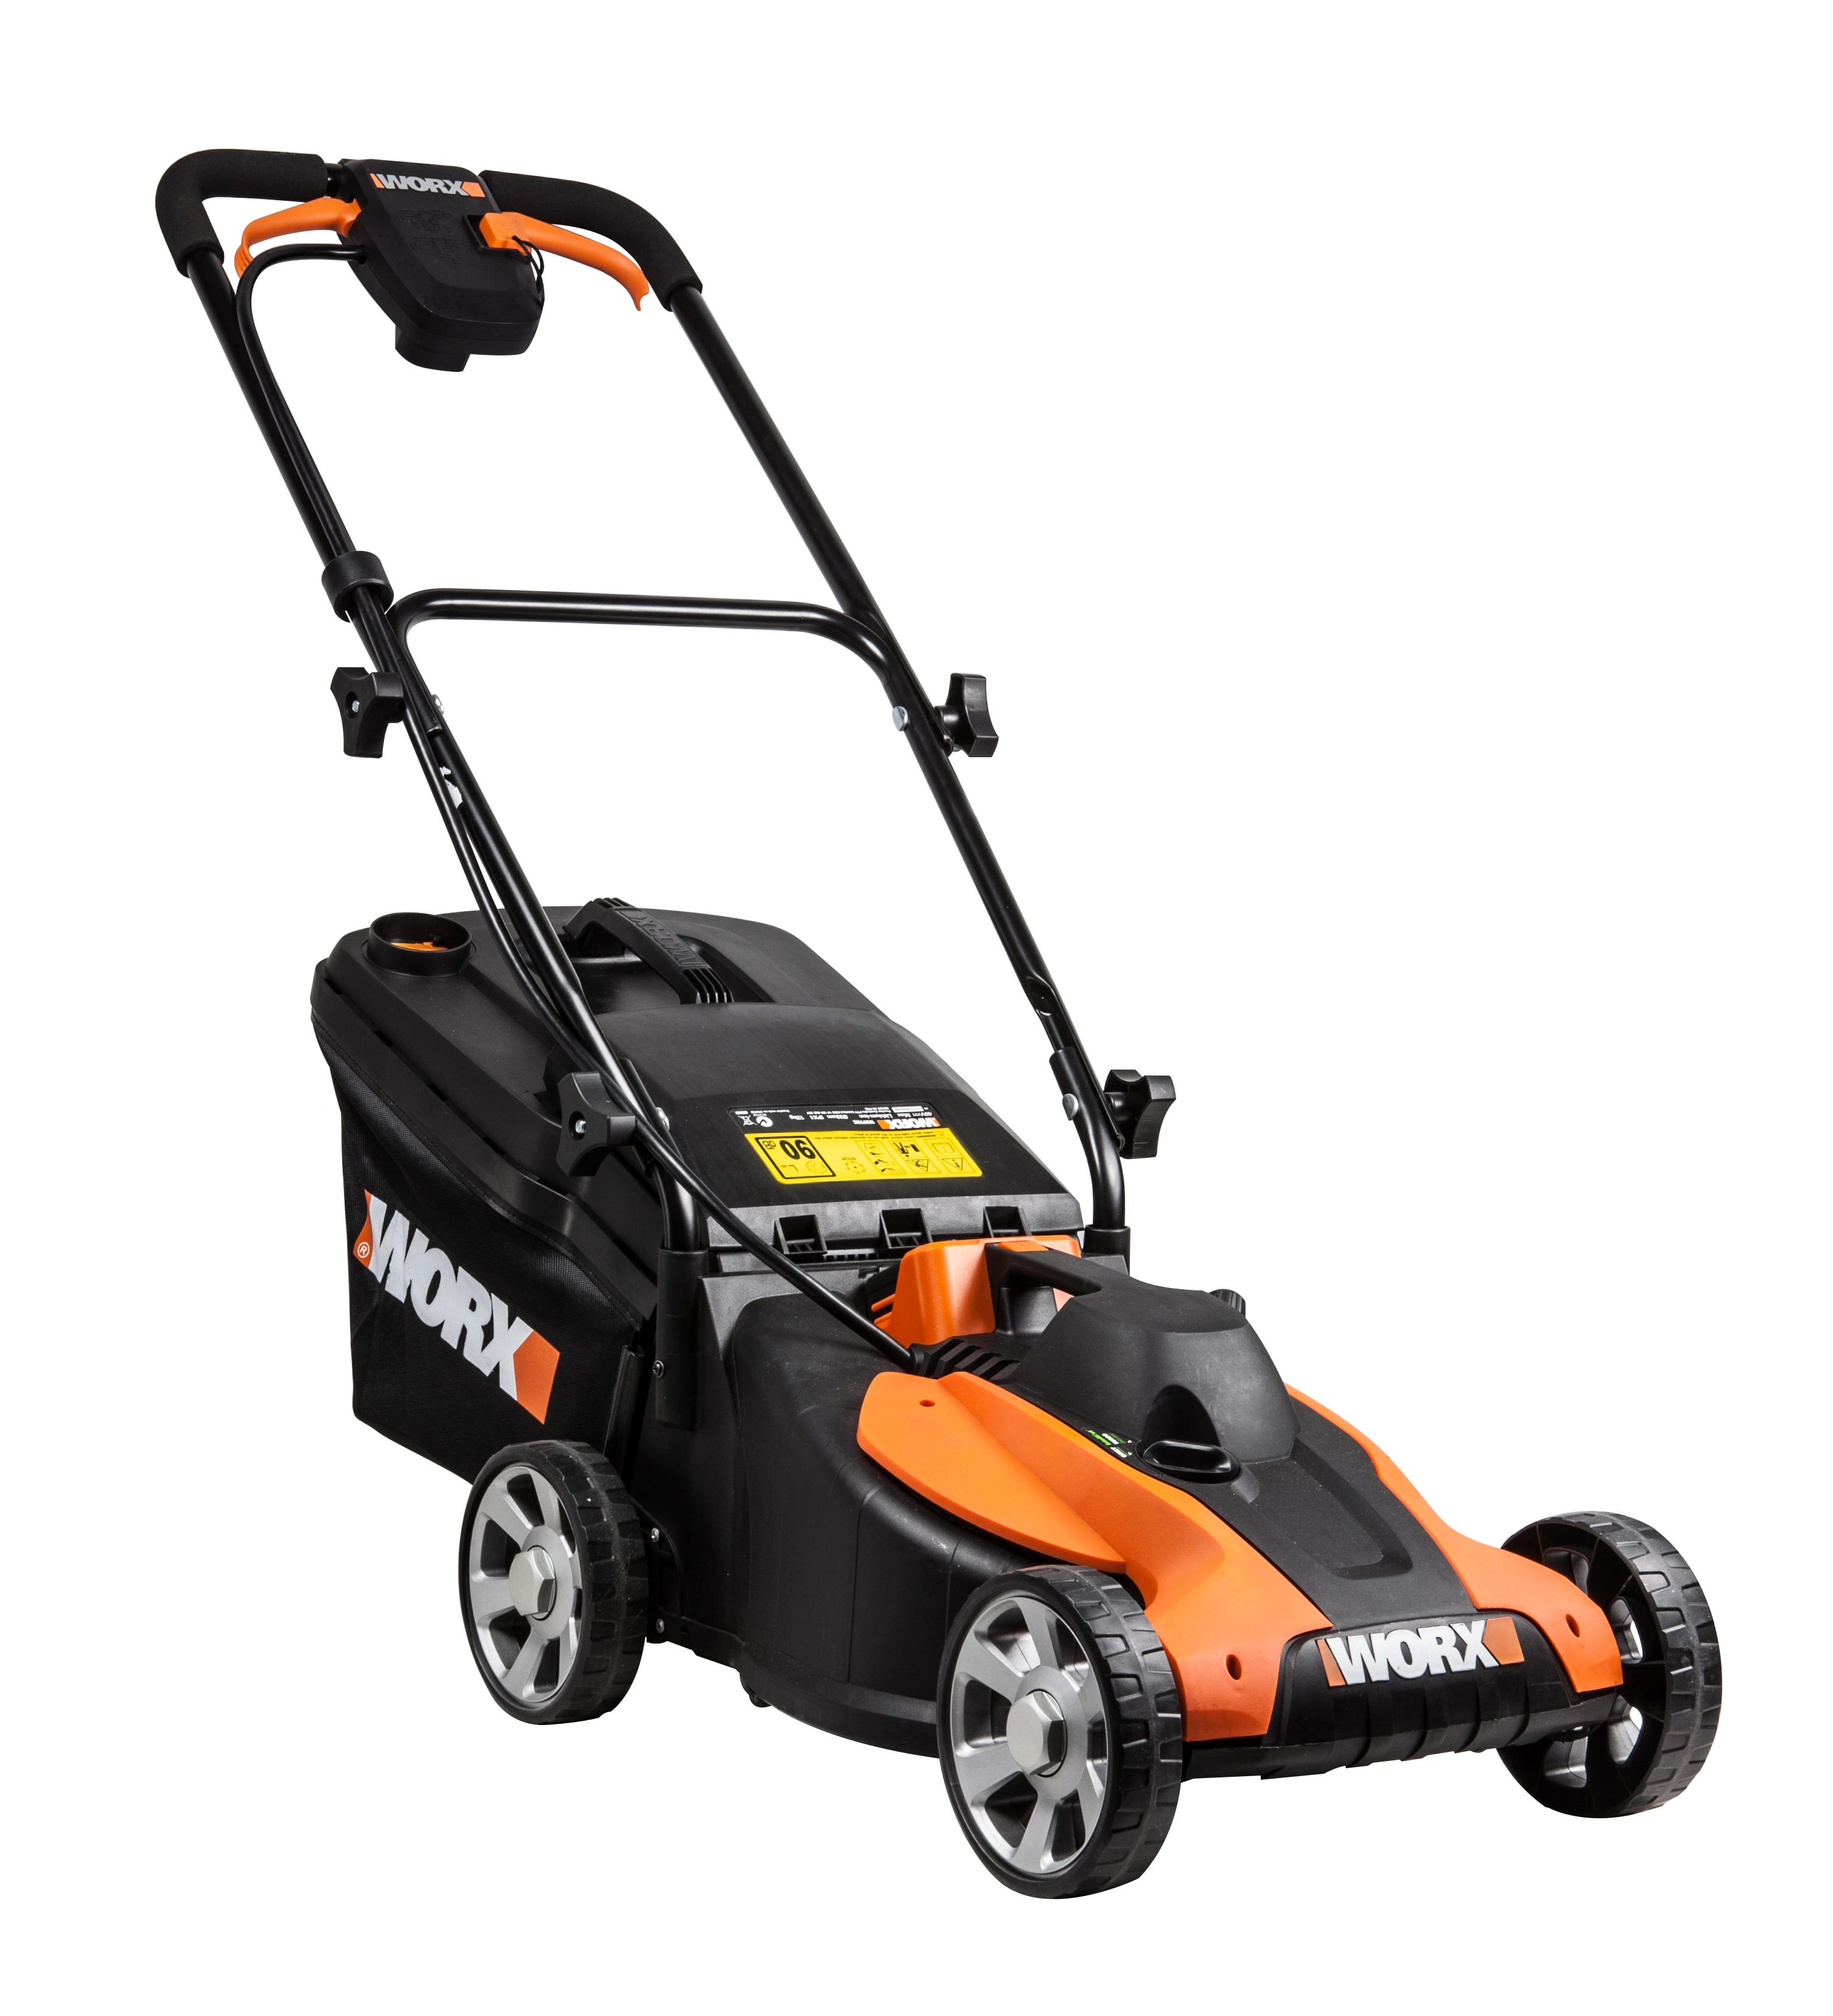 worx wg776e 40 v lithium ion cordless 33cm lawn mower diy tools. Black Bedroom Furniture Sets. Home Design Ideas